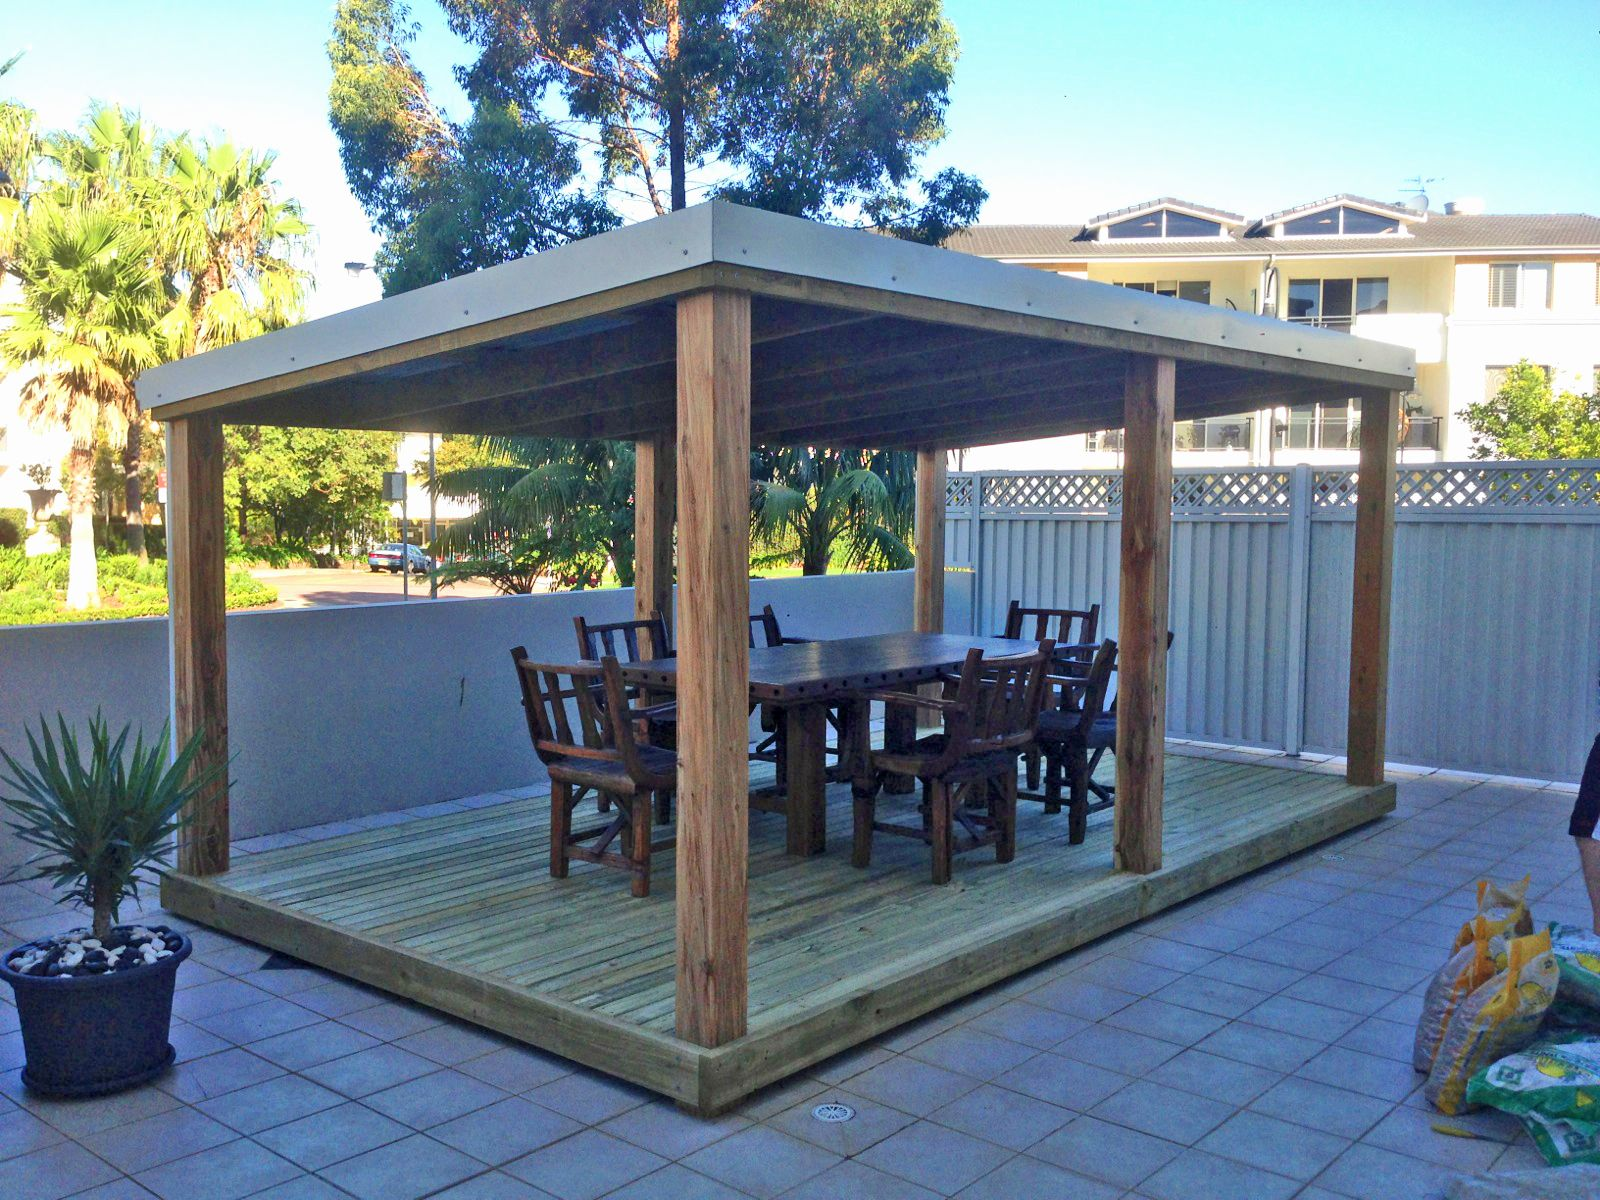 pergolas   outdoor features aarons pergolas pinterest ashley furniture outdoor fire pit outdoor furniture fire pit cooler